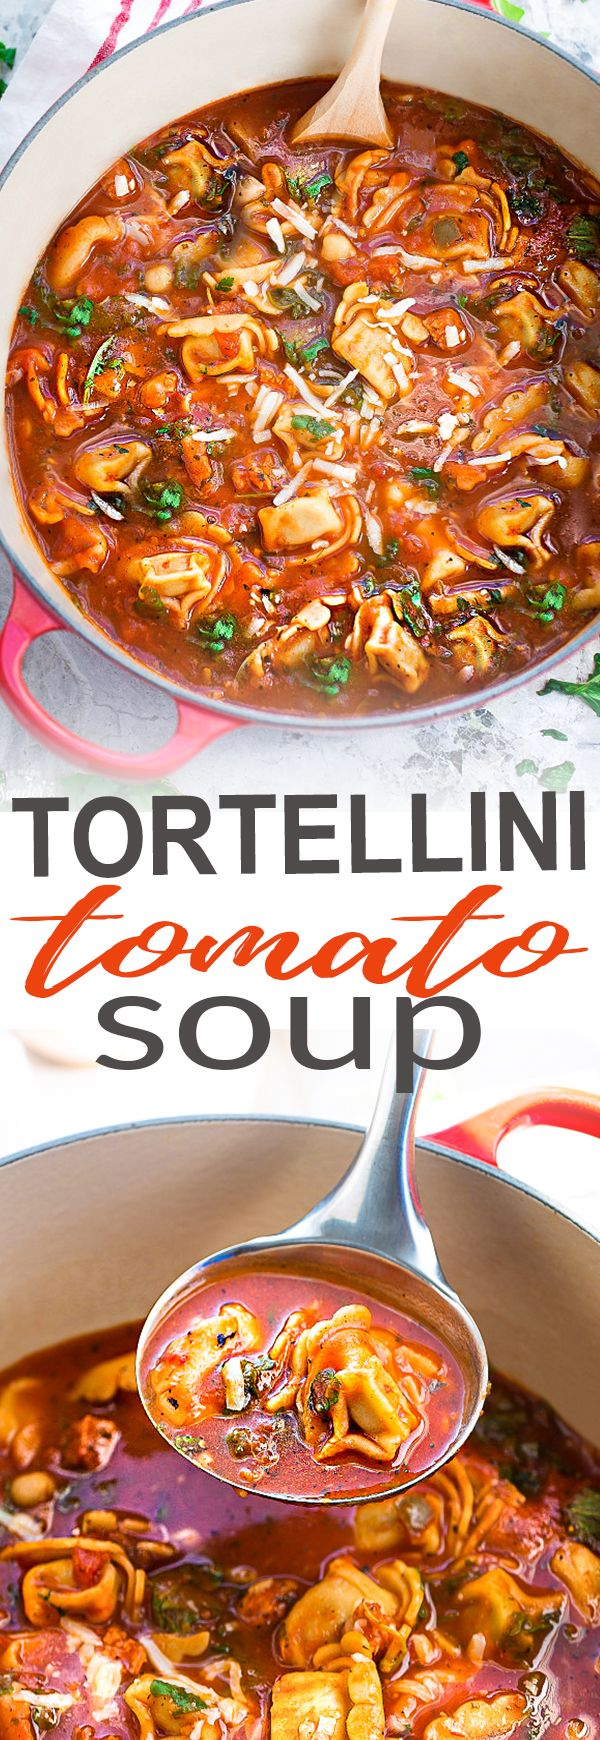 This delicious recipe for Italian Sausage Tortellini Tomato Soup is the perfect comforting soup for busy weeknights! Best of all, it's so easy to make and packed with with the most amazing flavors. Made with cheese tortellini, Italian sausage, arugula and tomatoes. Hearty, filling and easy to customize with your favorite greens or vegetables for a nutritious lunch or dinner.